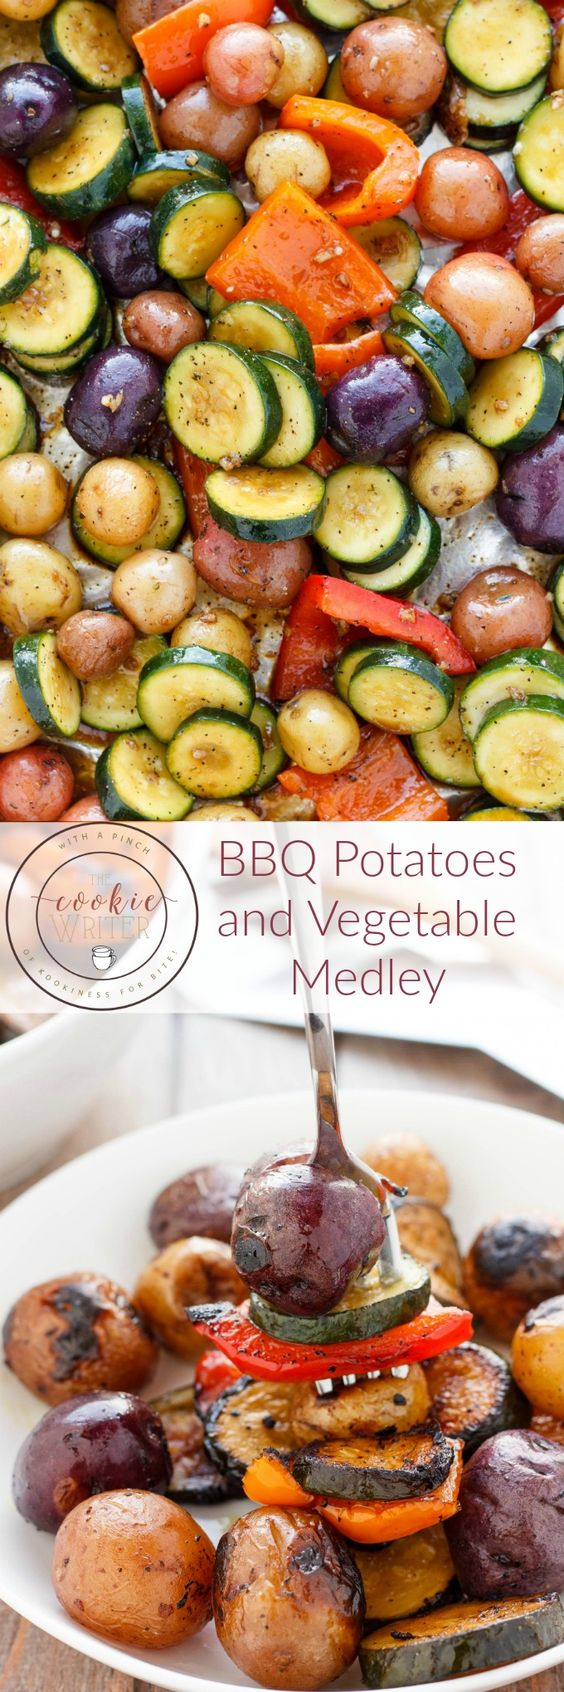 The Cookie Writer - BBQ potatoes and vegetables medley